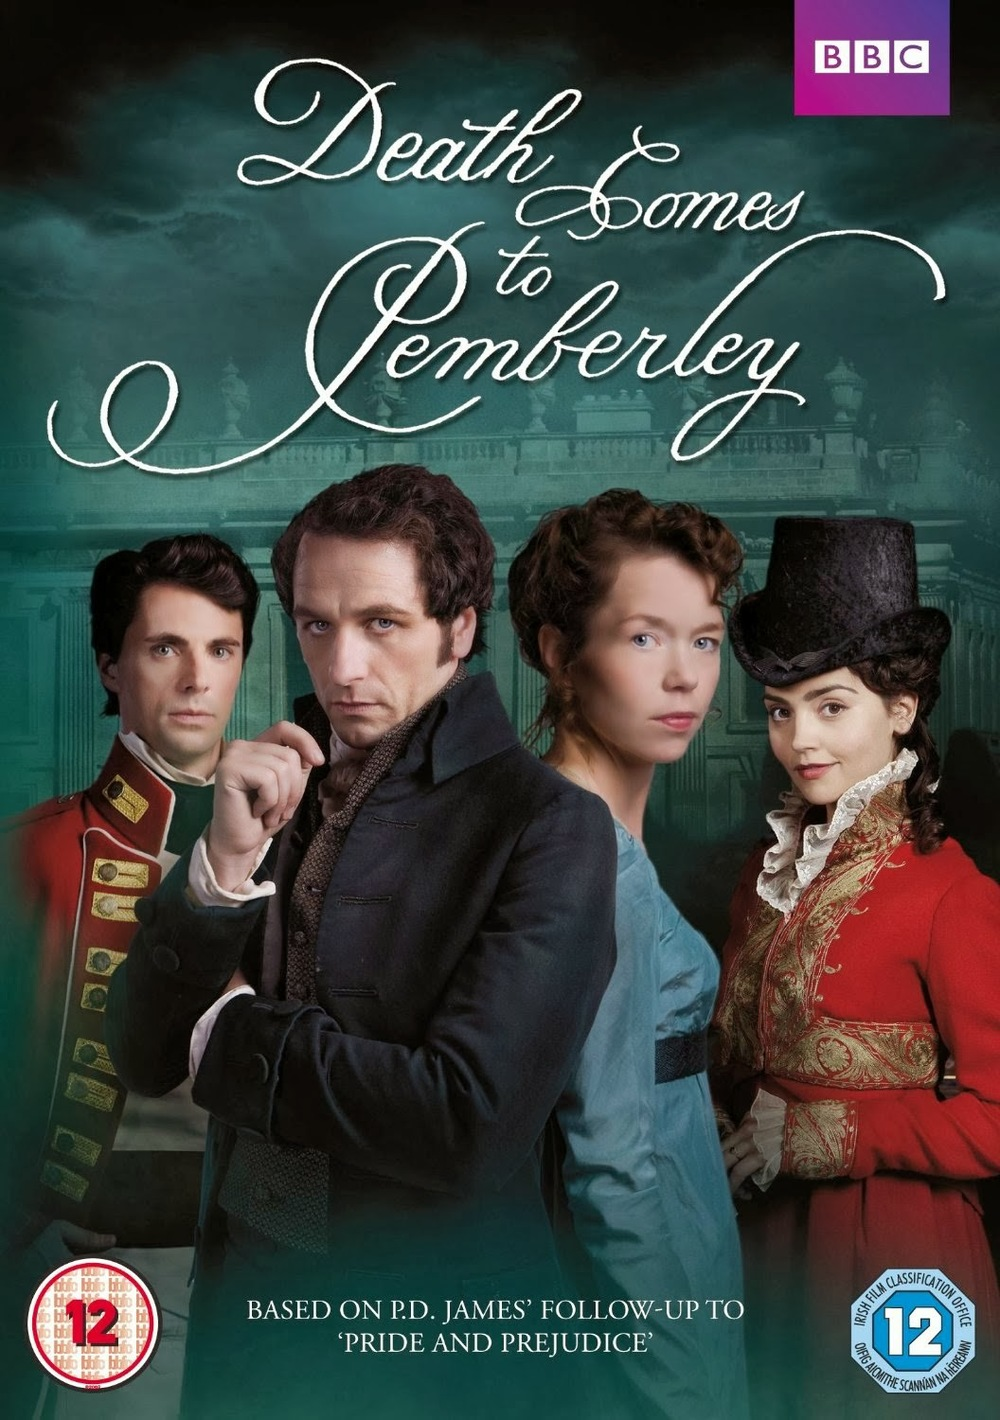 DEATH COMES TO PEMBERLEY - Sound FX Editing